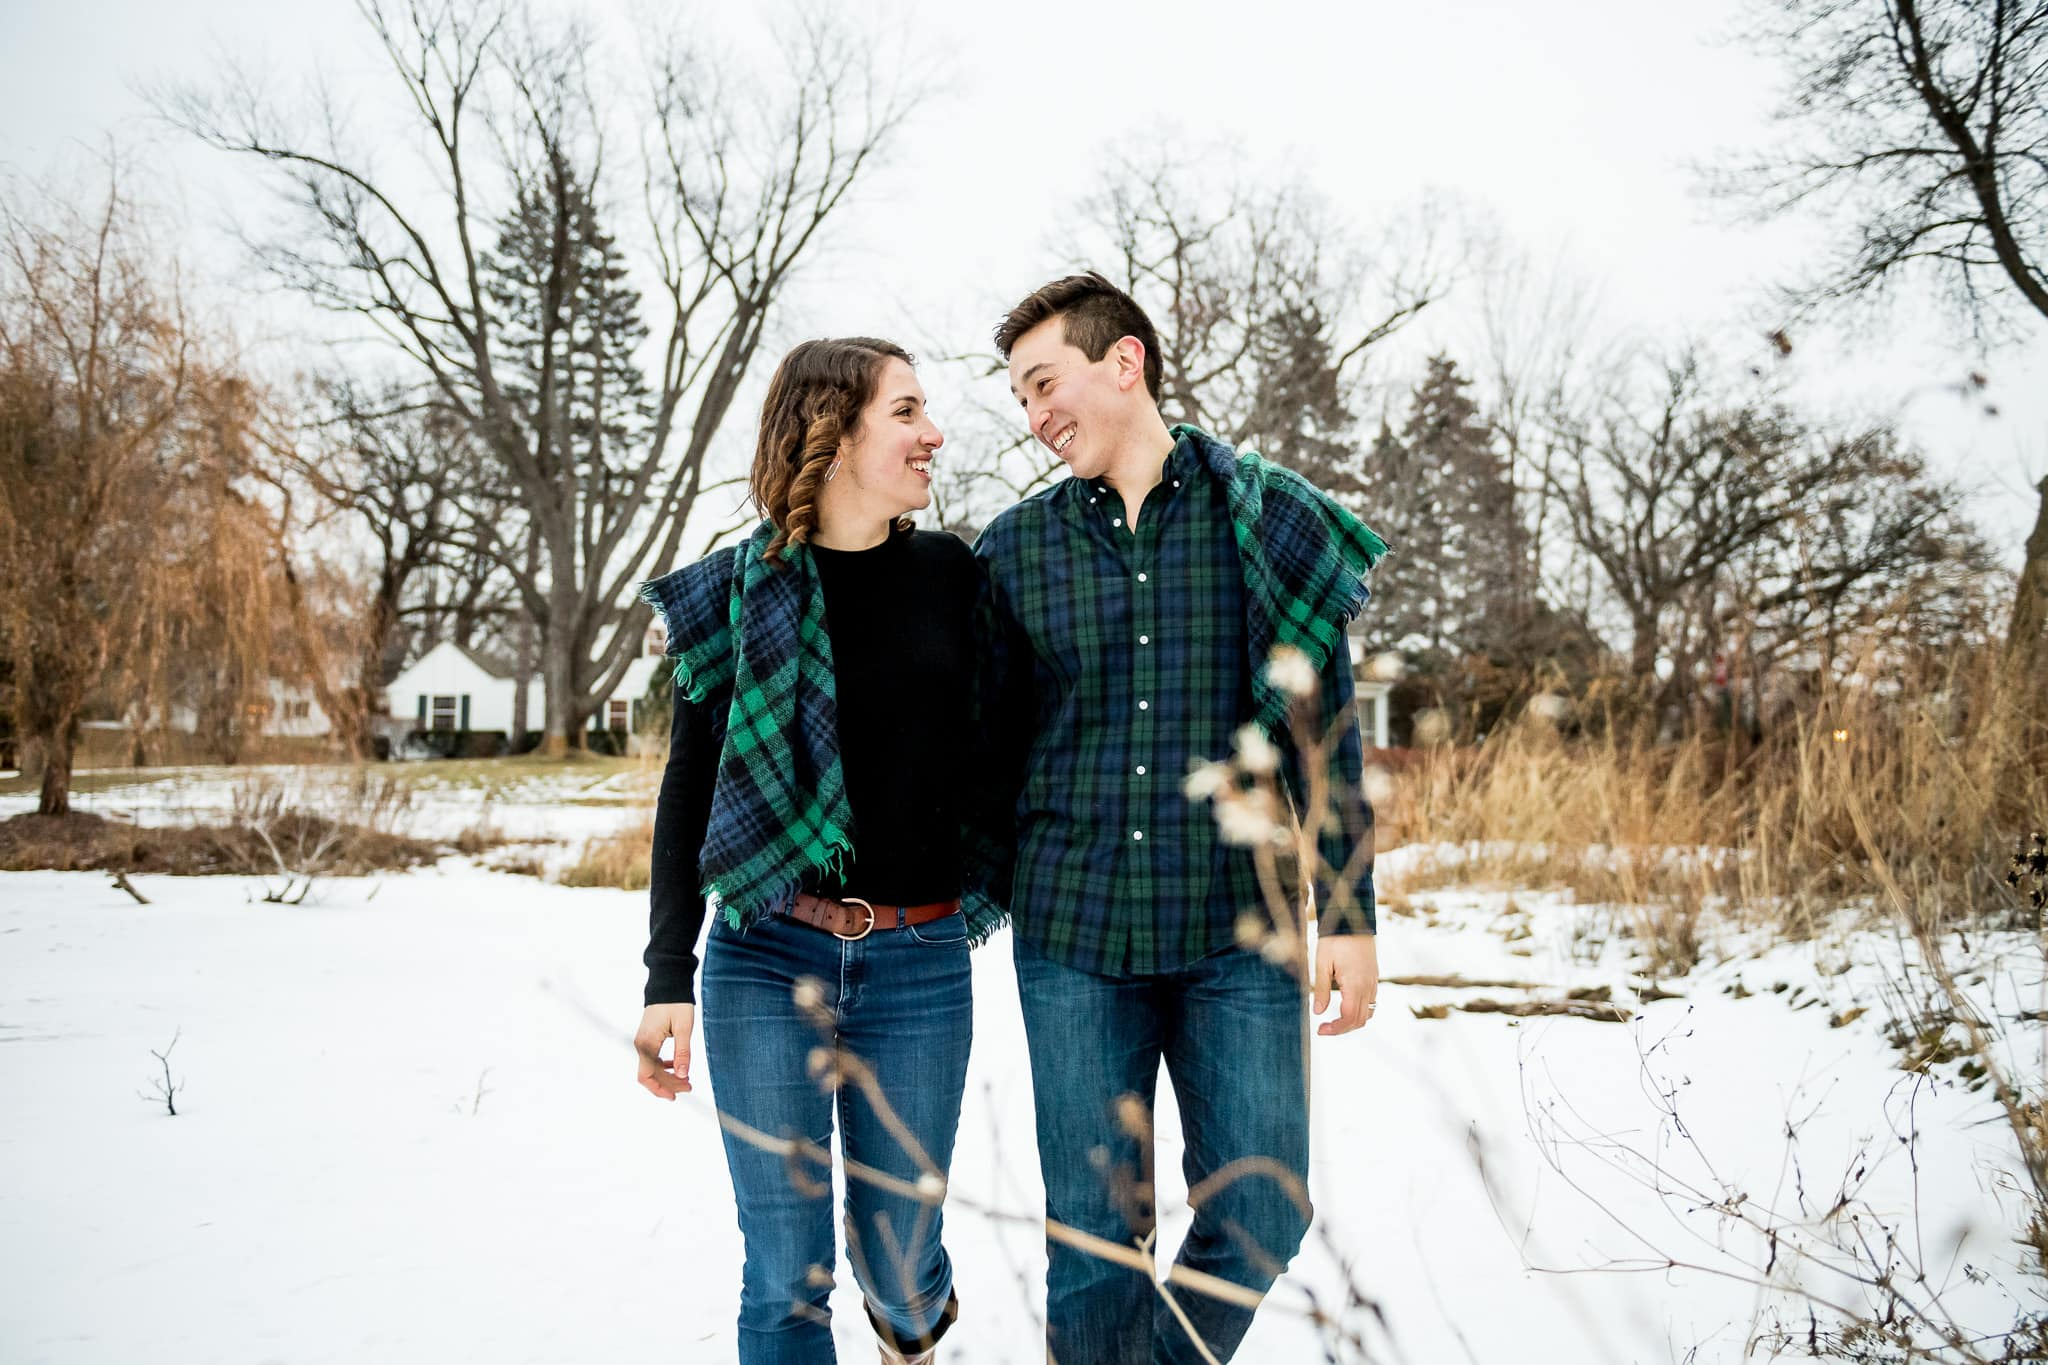 Couple walking on frozen pond with a blue and green plaid blanket wrapped around them as they smile at each other